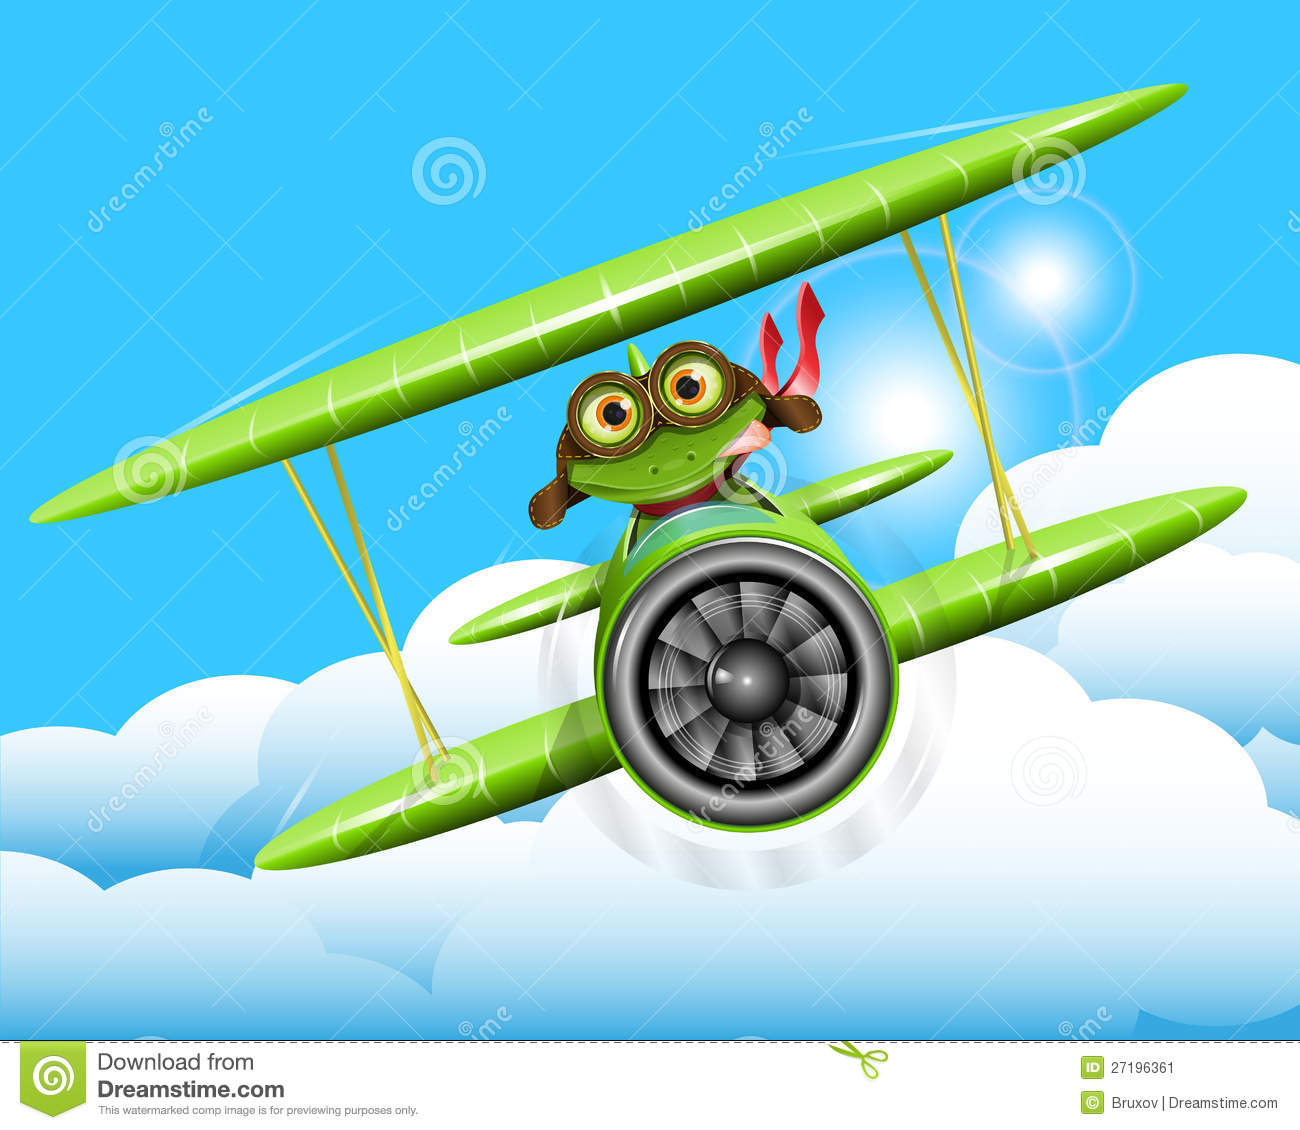 Frog Aircraft Stock Illustrations – 46 Frog Aircraft Stock Illustrations,  Vectors & Clipart - Dreamstime